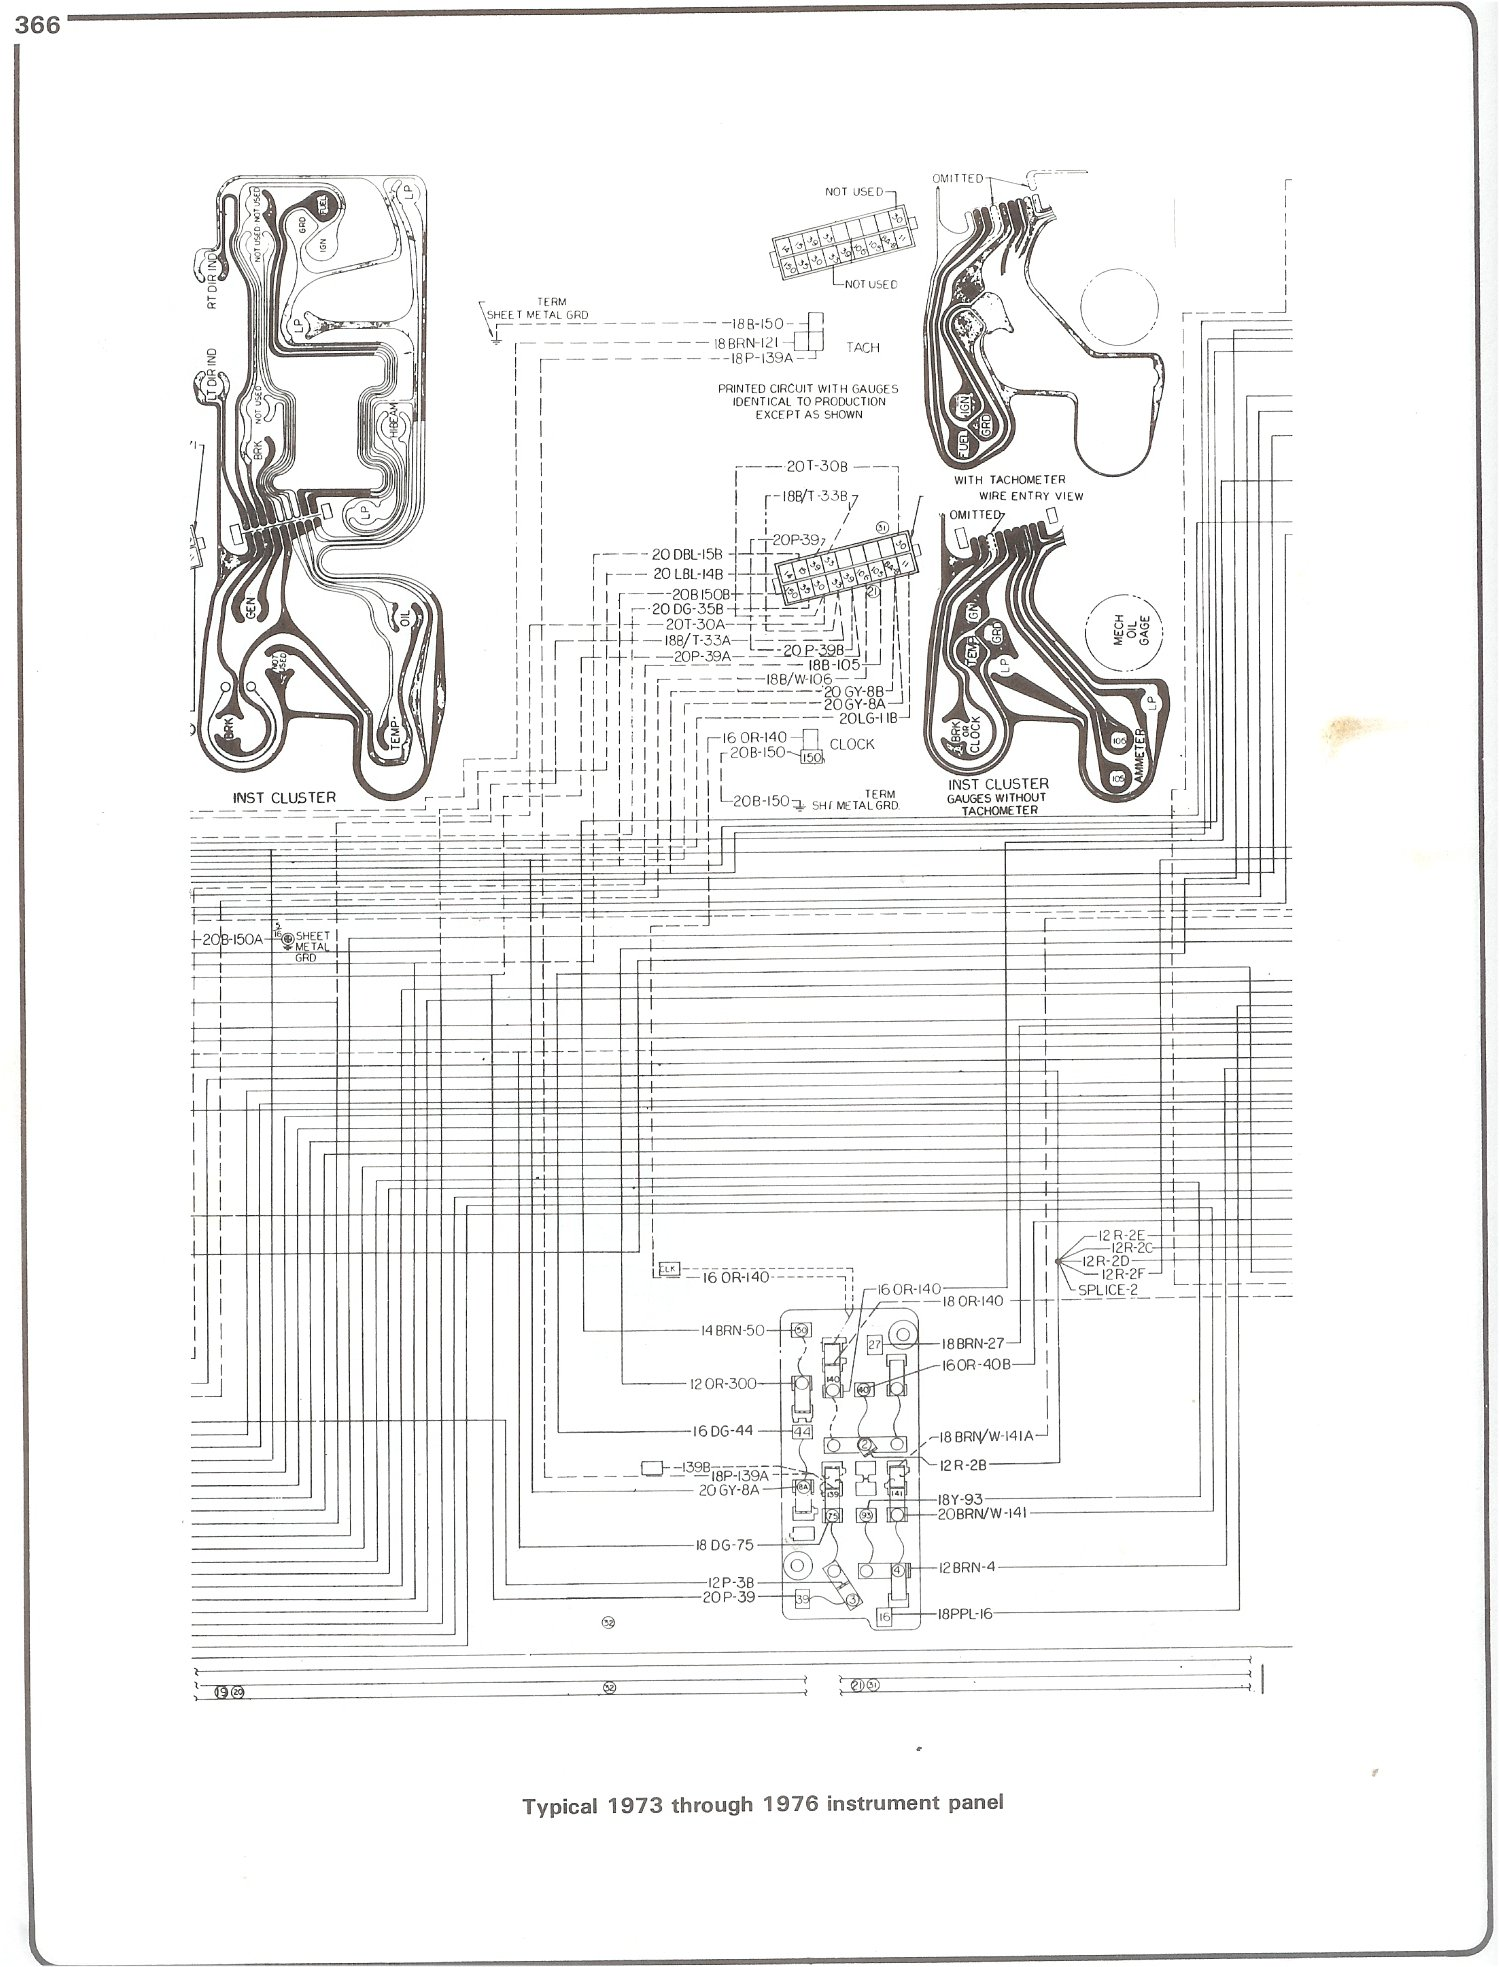 Plete 7387 Wiring Diagrams. 7376 Instrument Cluster. Chevrolet. 1978 Chevy Scottsdale Wiring Diagram At Scoala.co